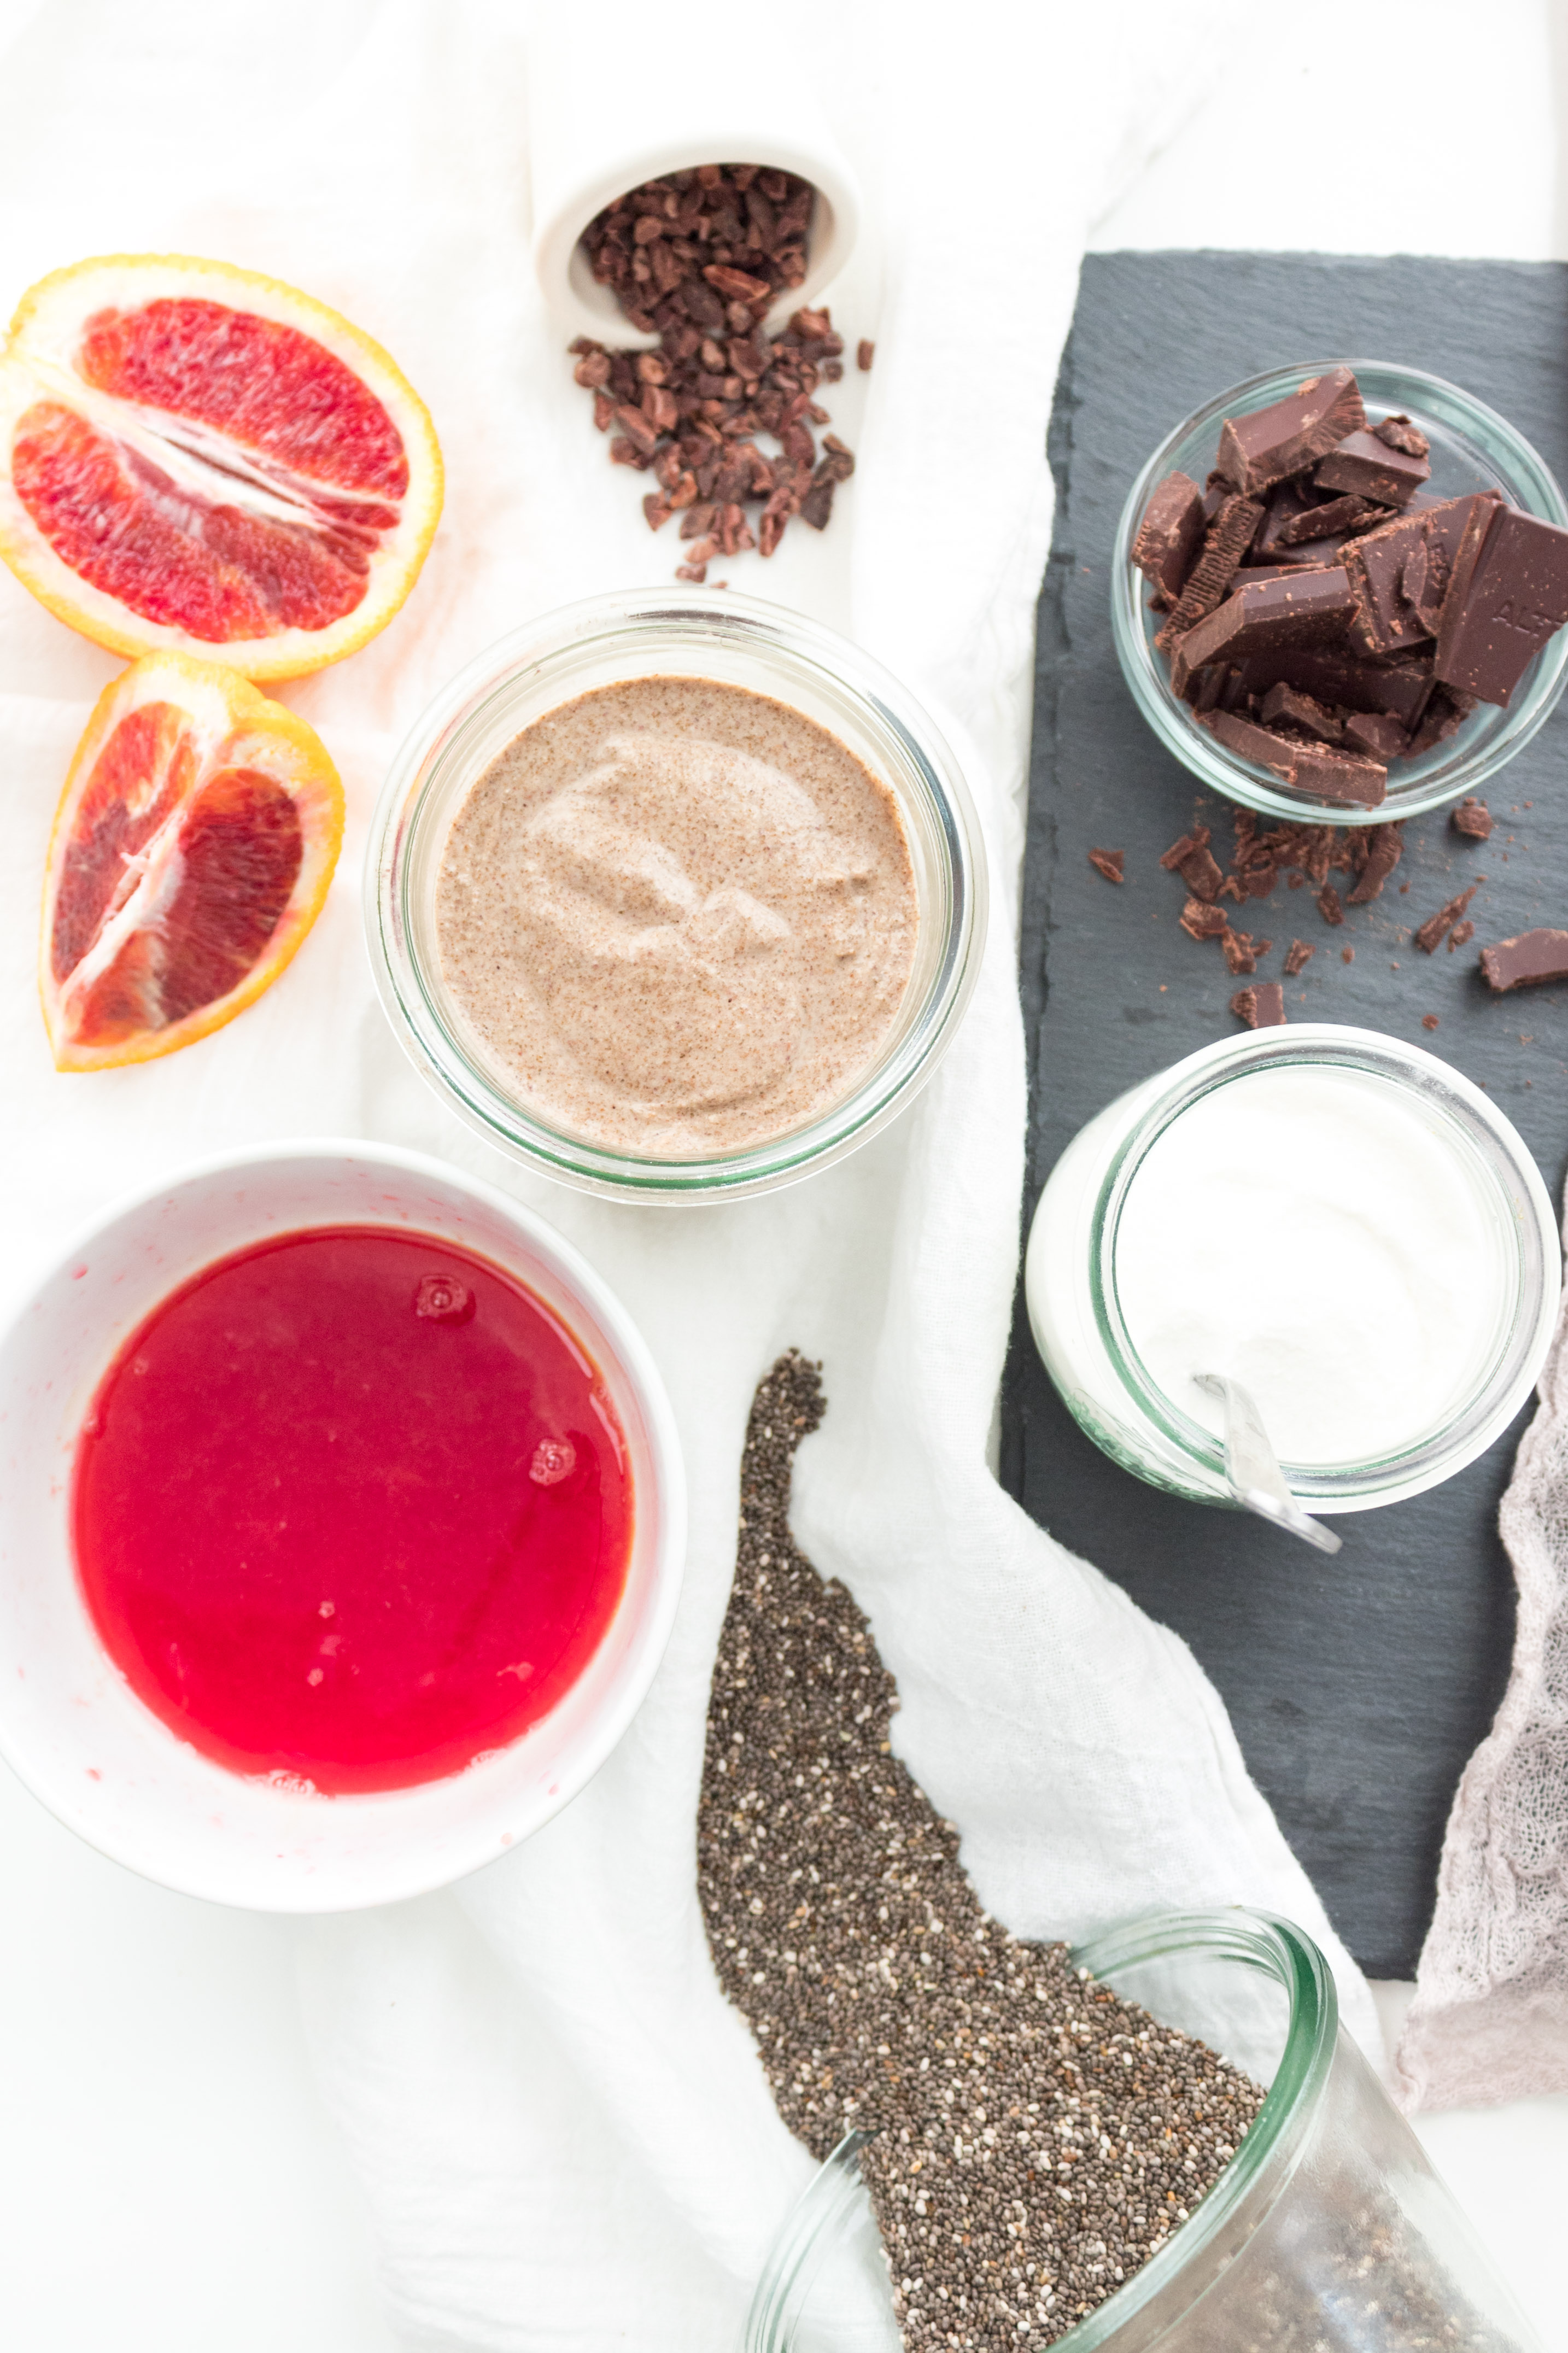 Kerri Axelrod SilverFern Brand Chia Pudding ingredients